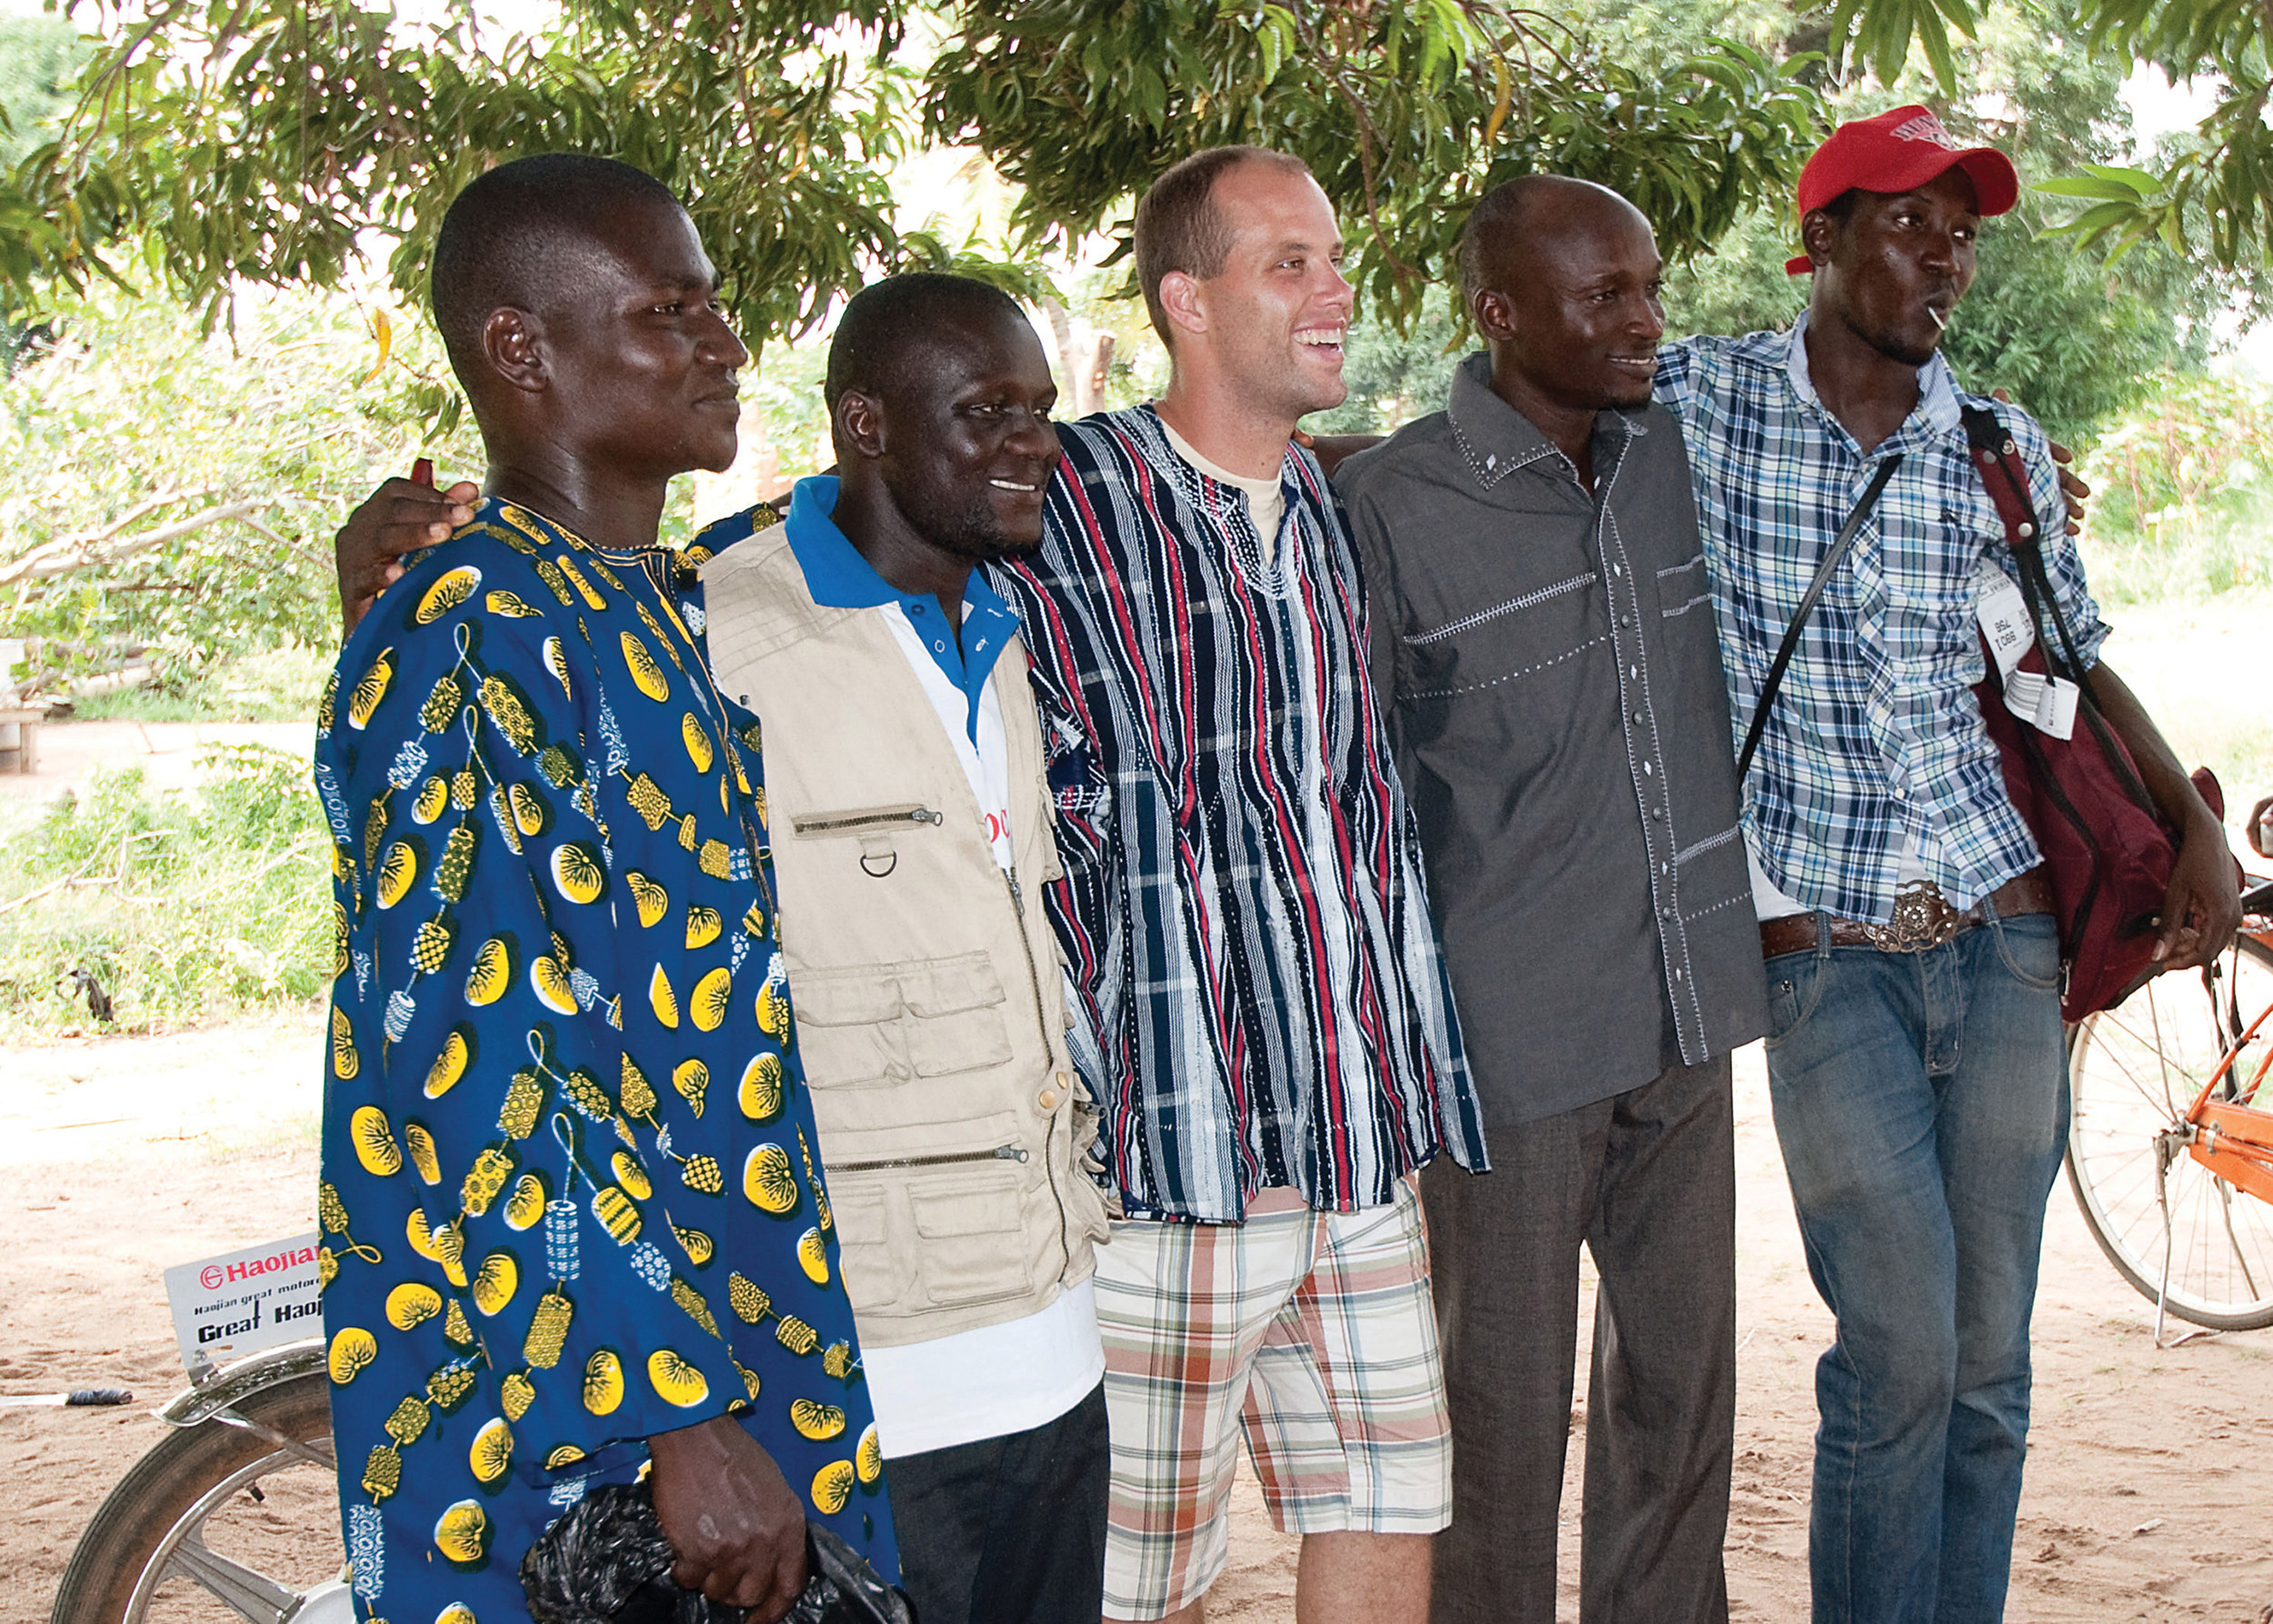 #2: May 2011 - First Ghanaian staff hired